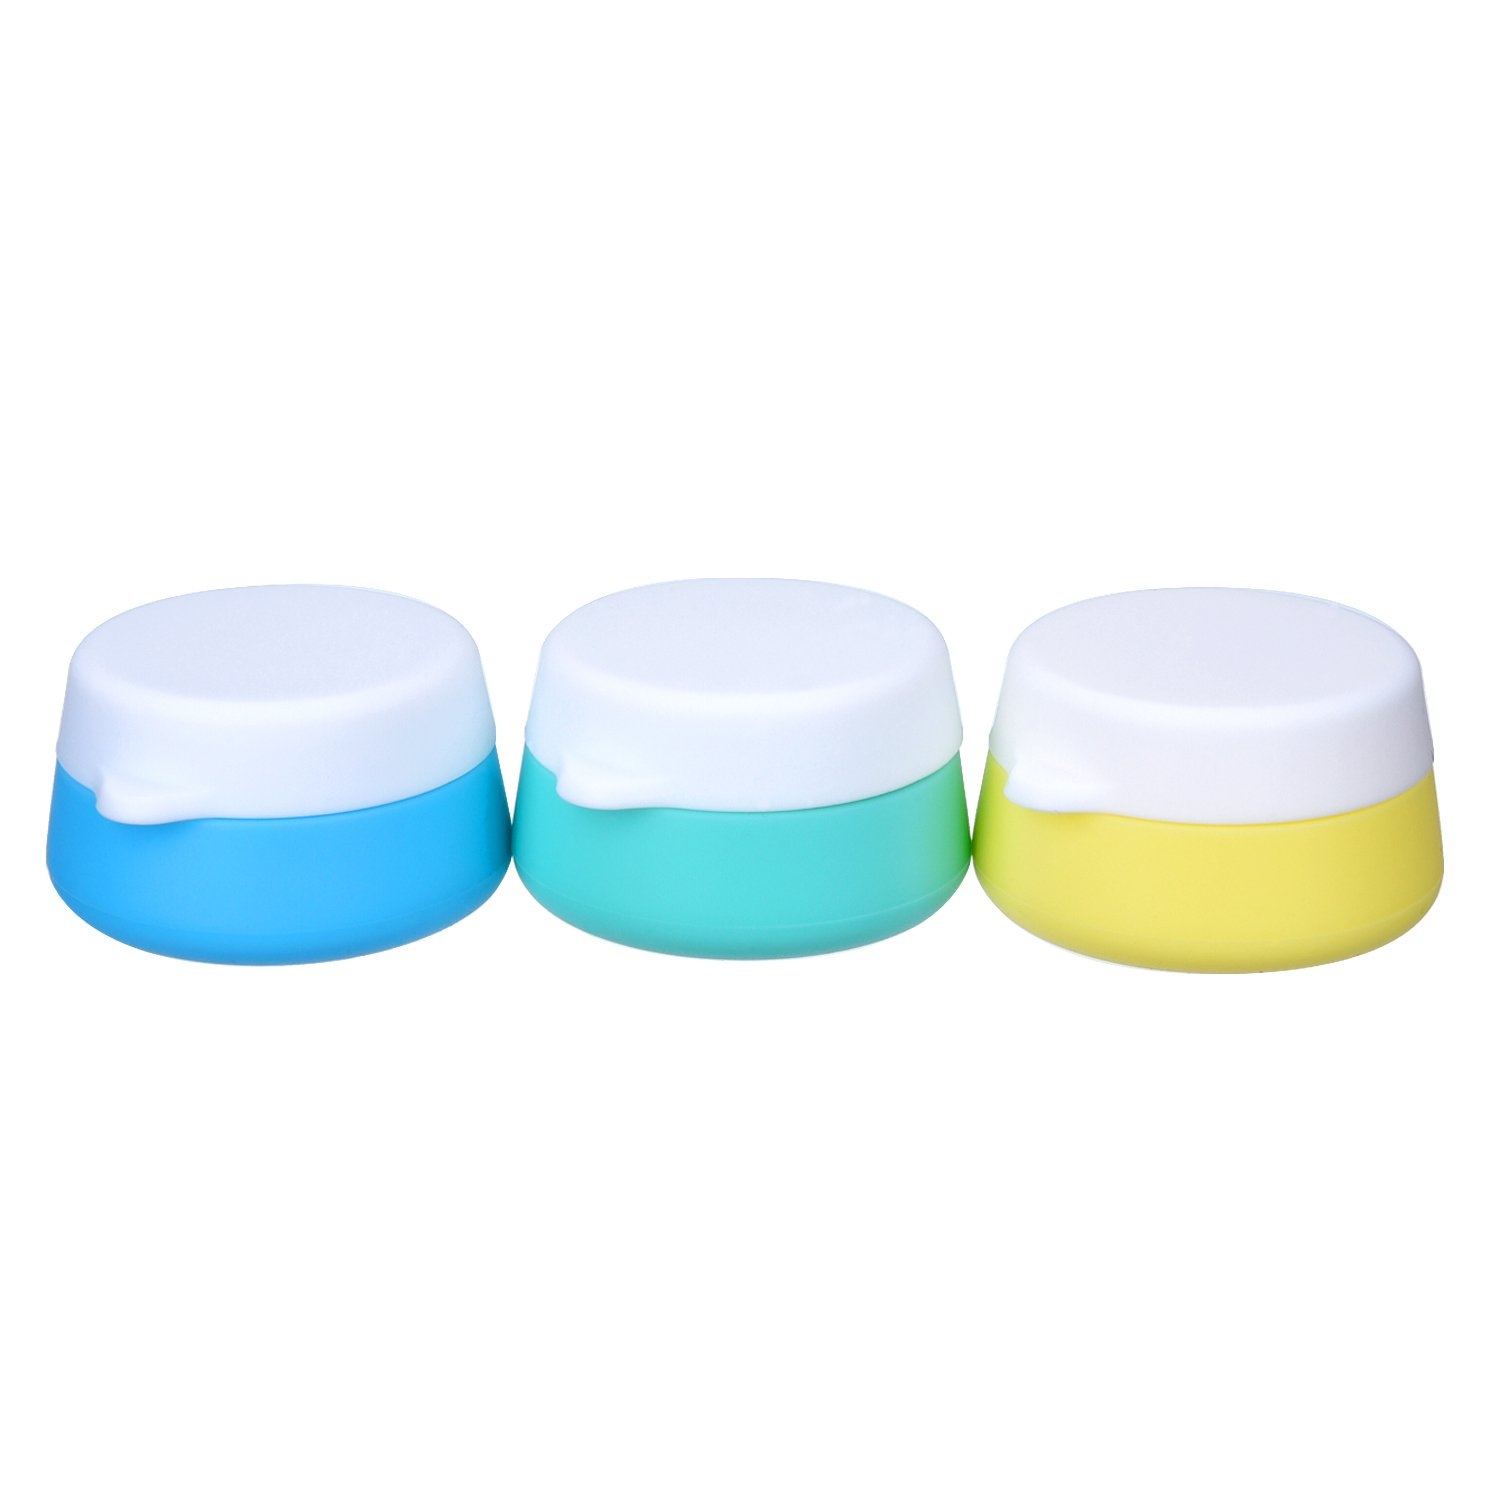 Mudder Silicone Cosmetic Containers Cream Jar with Sealed Lids, 3 Pieces (30 ml)